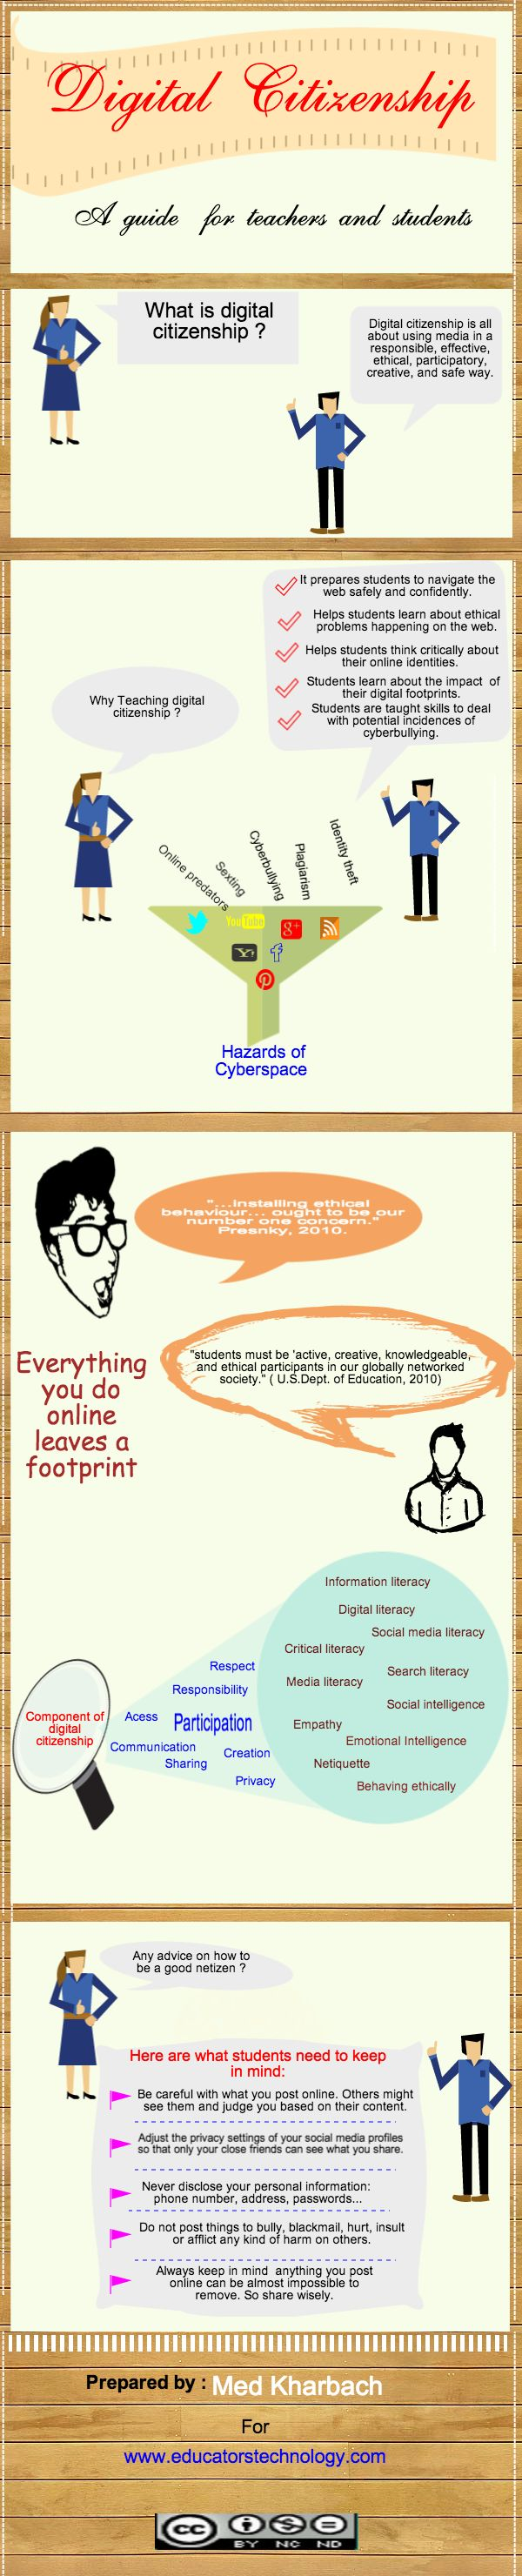 digital citizenship poster for teachers and students